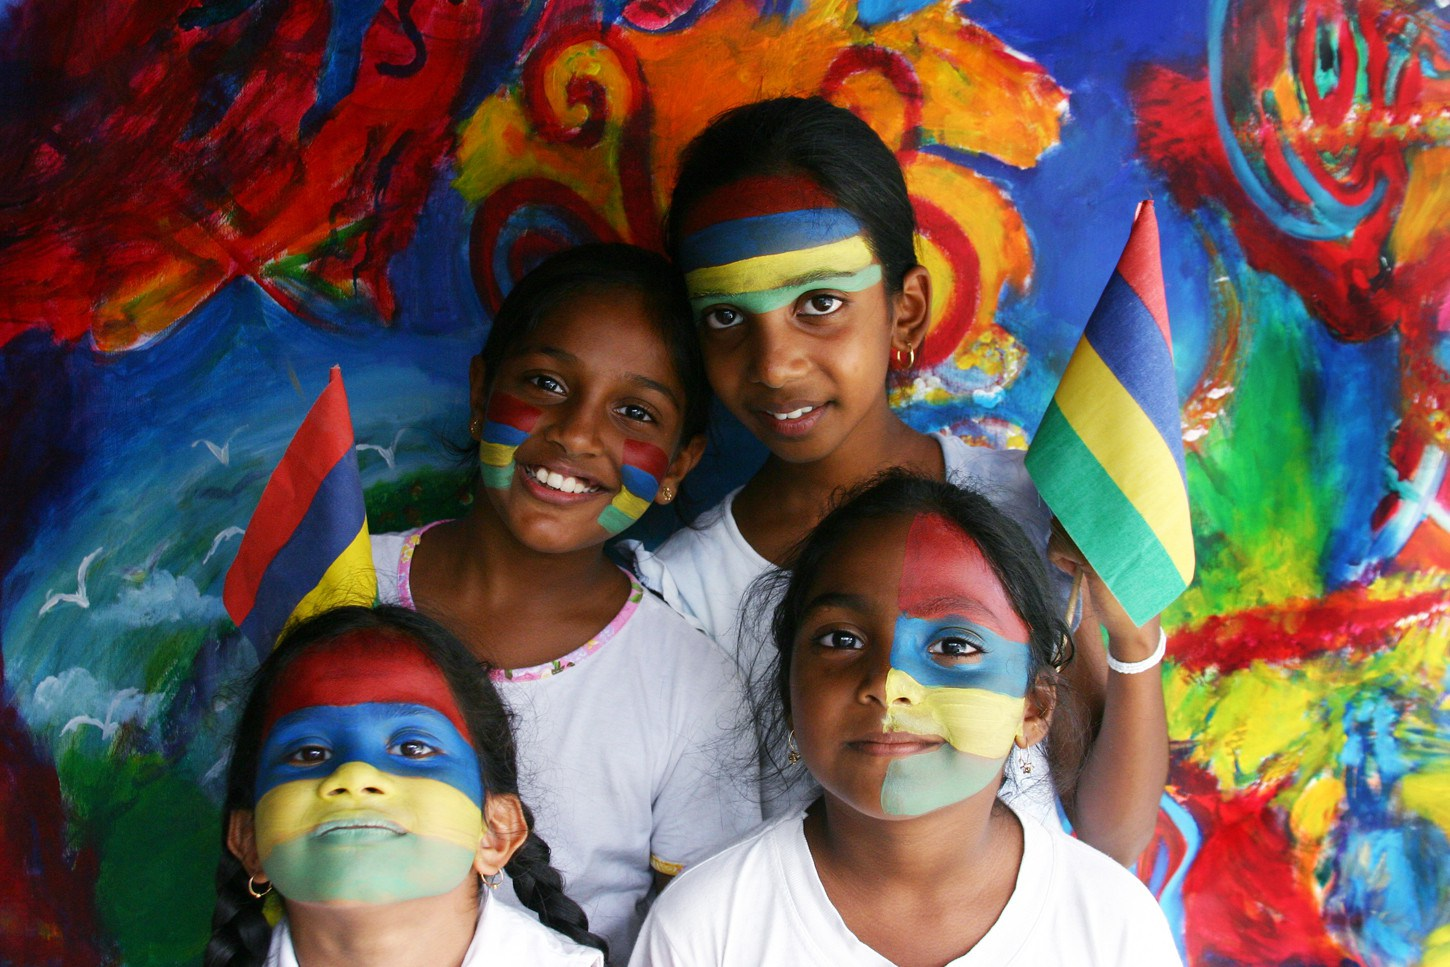 Mauritius is ranked as the least fragile country in Africa, and 148th in the world index – it has held this title since 2005. Image courtesy: NewsFeed